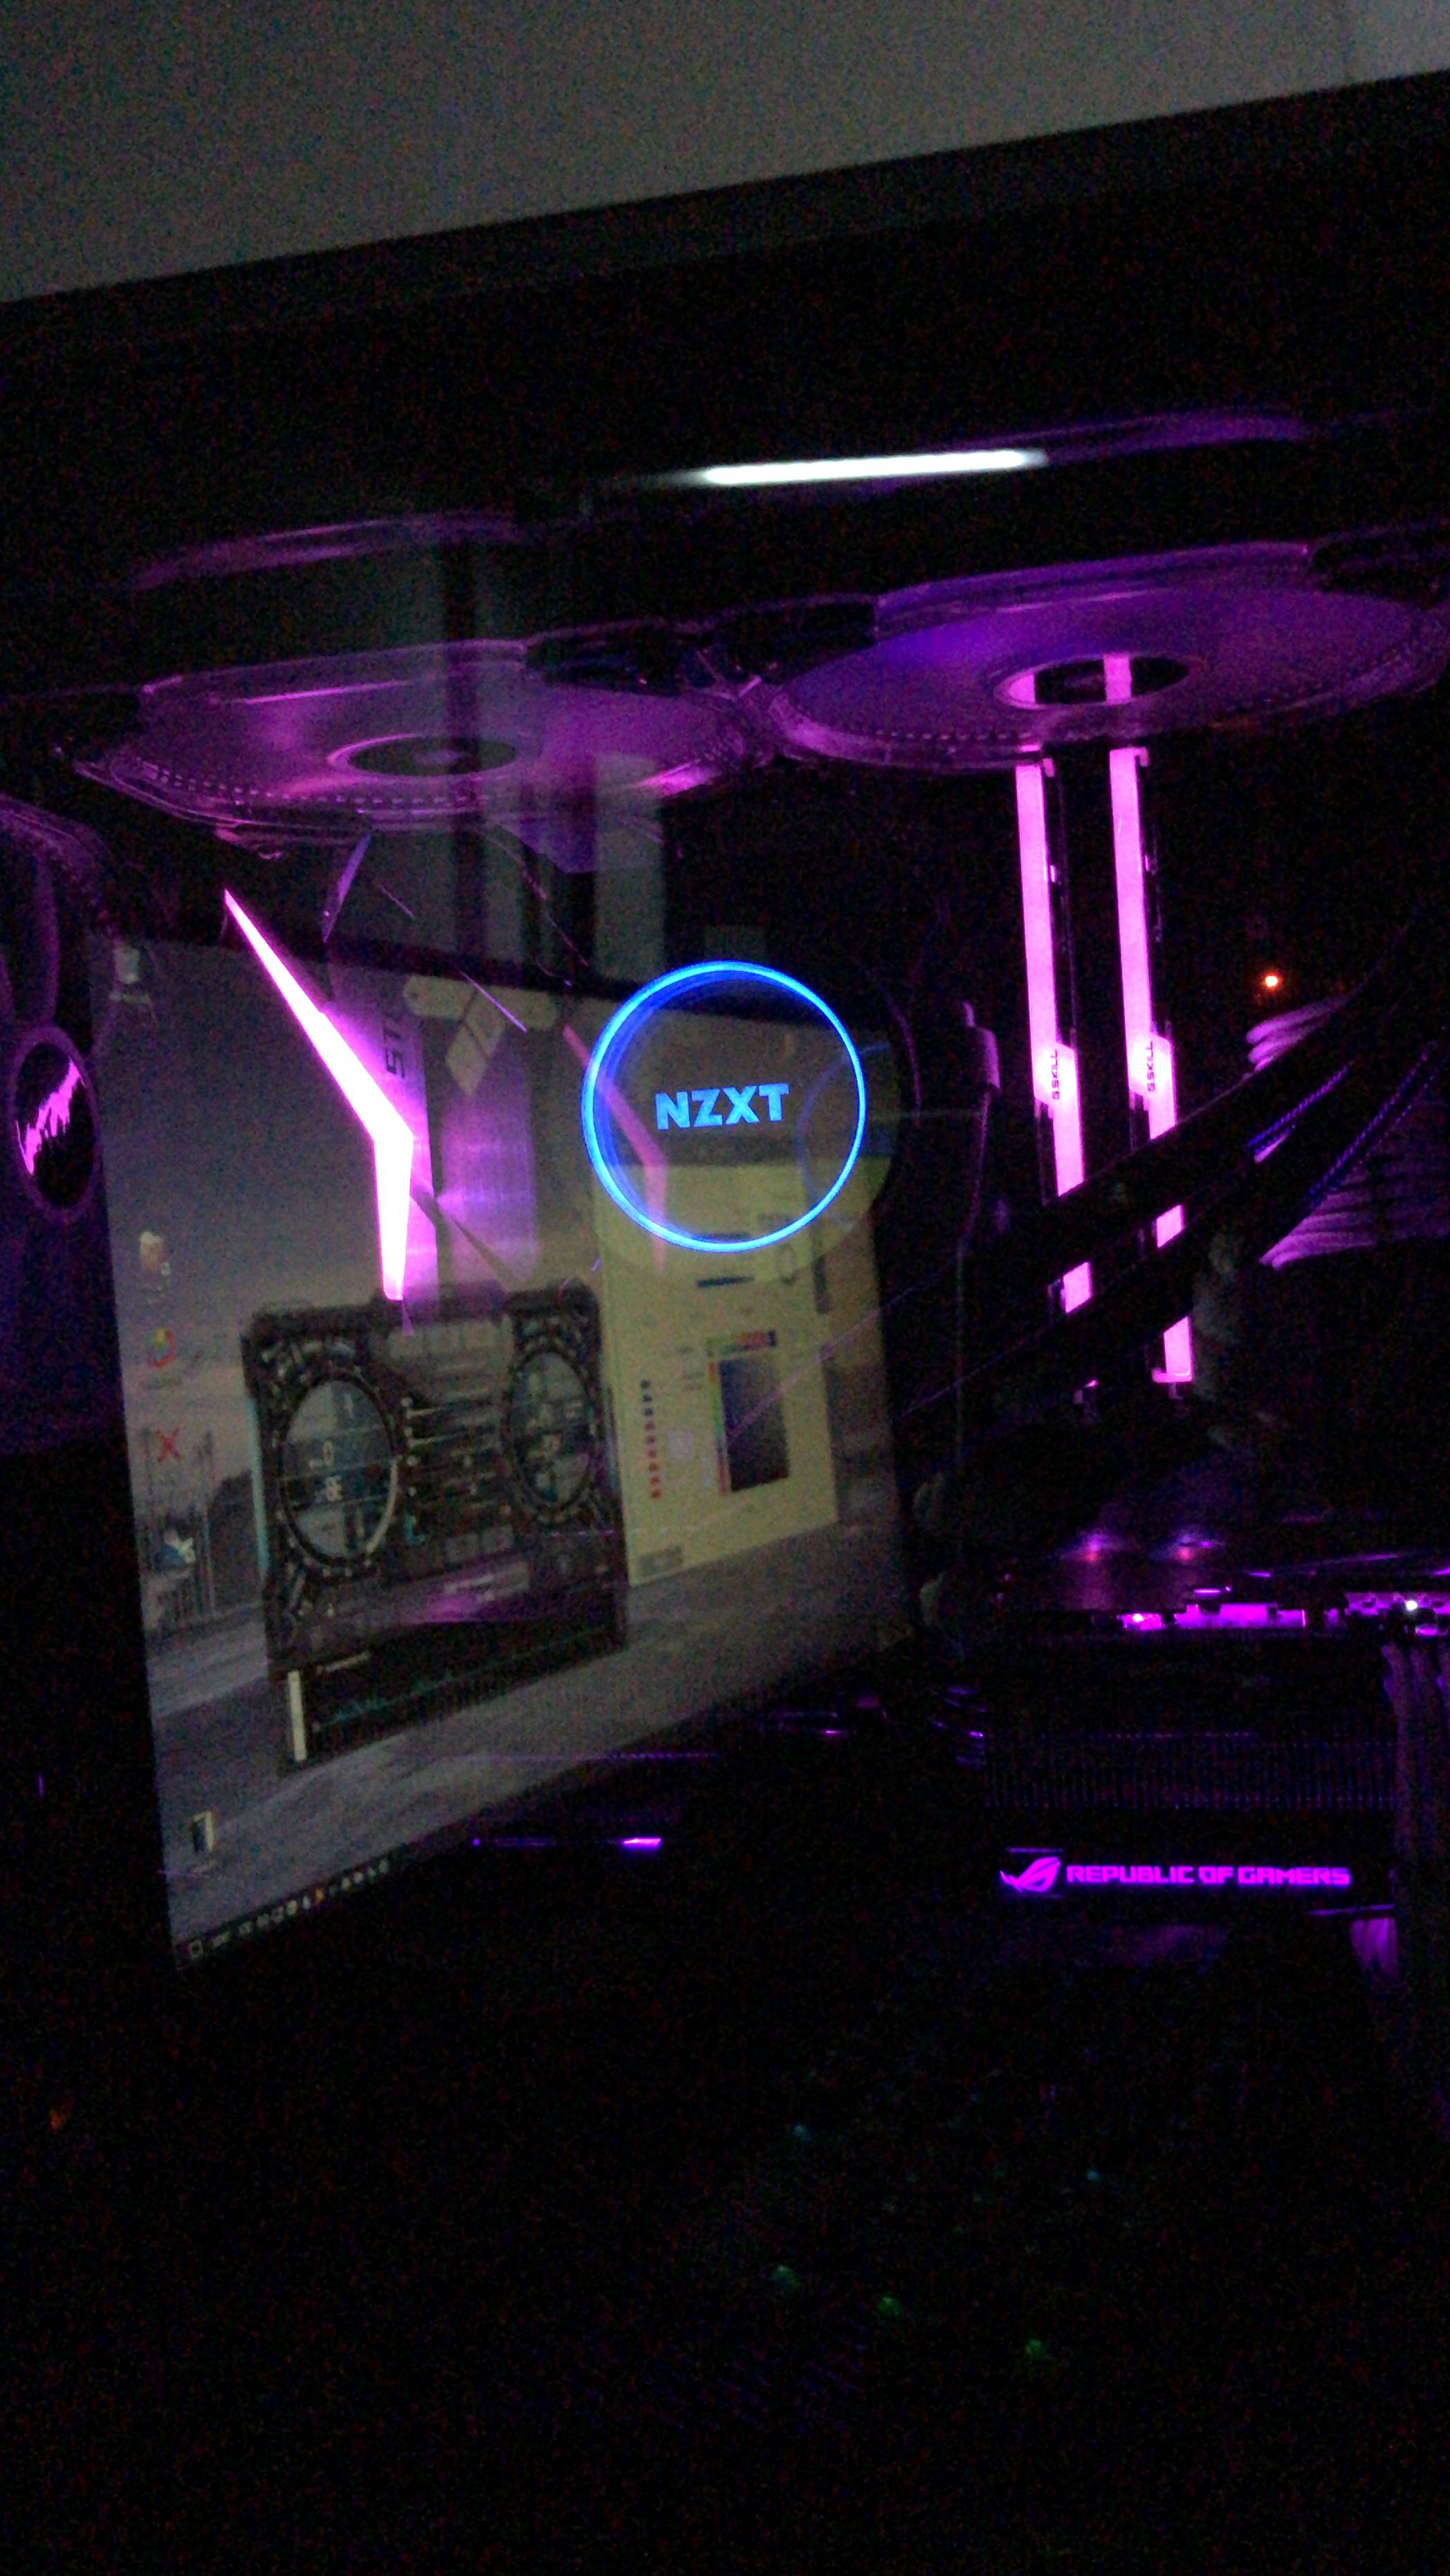 Syncing RGB fans / individually addressable LED strip with